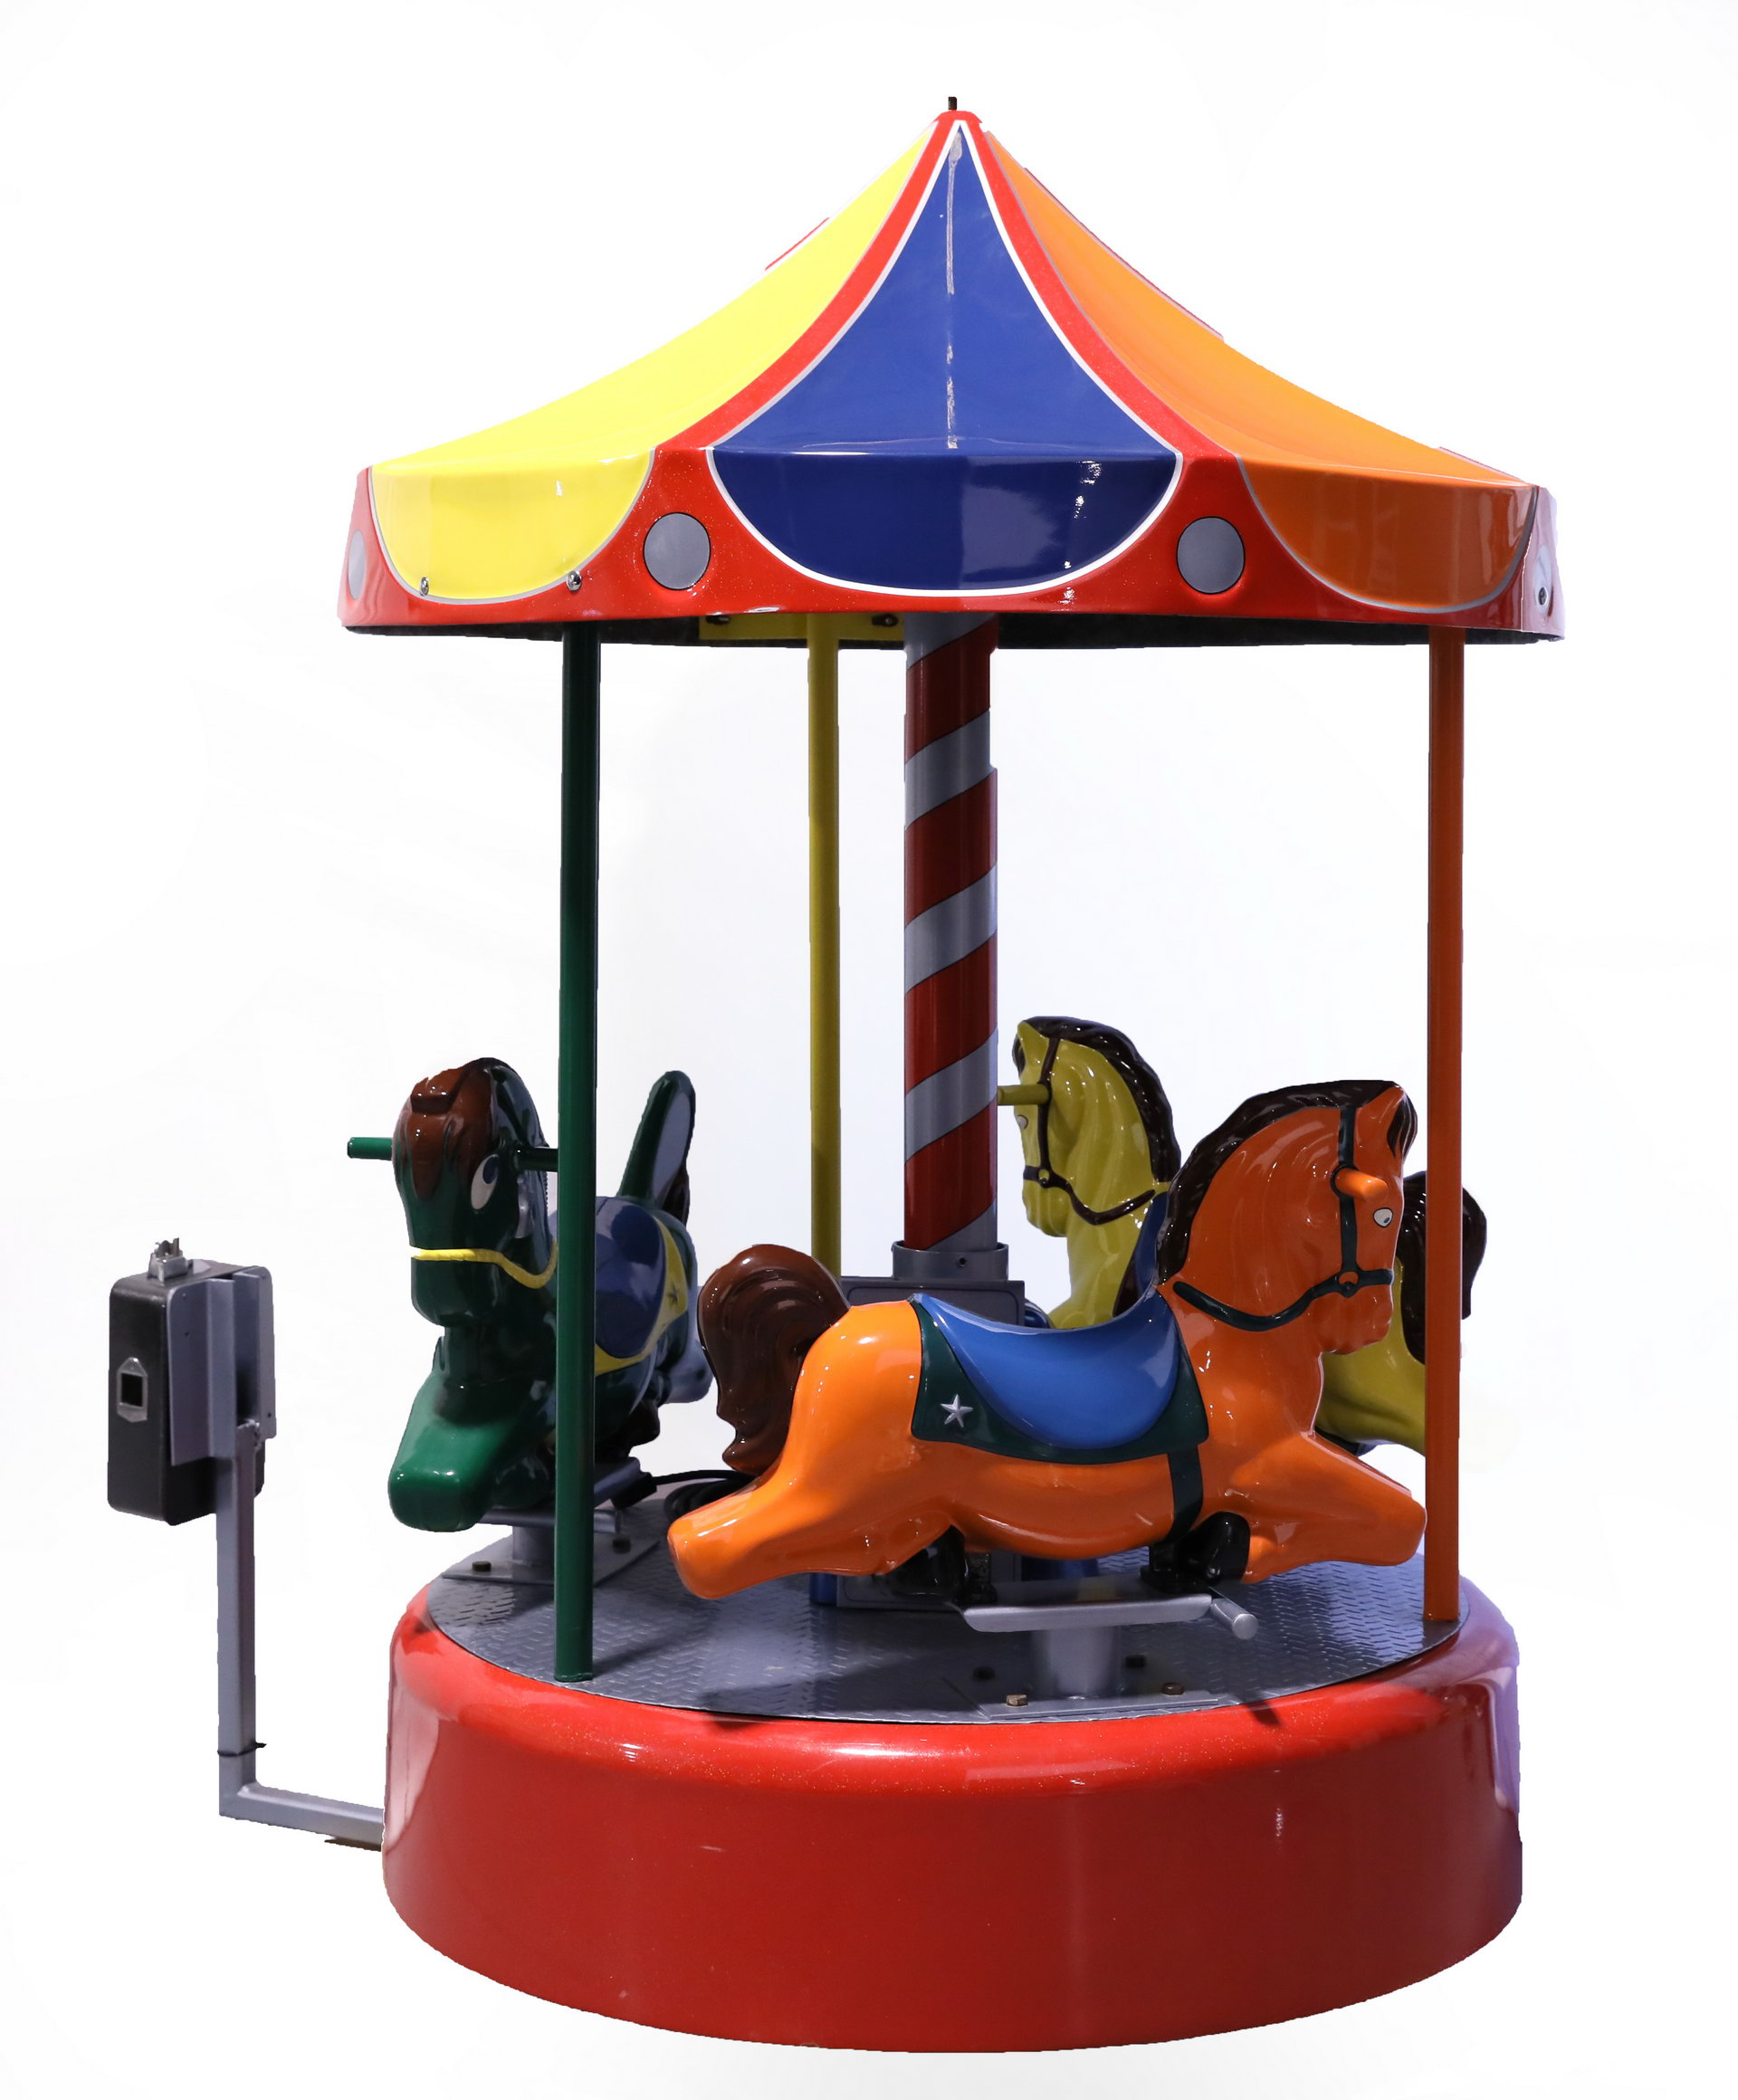 Coin-Operated Ride On Merry-Go-Round Carousel